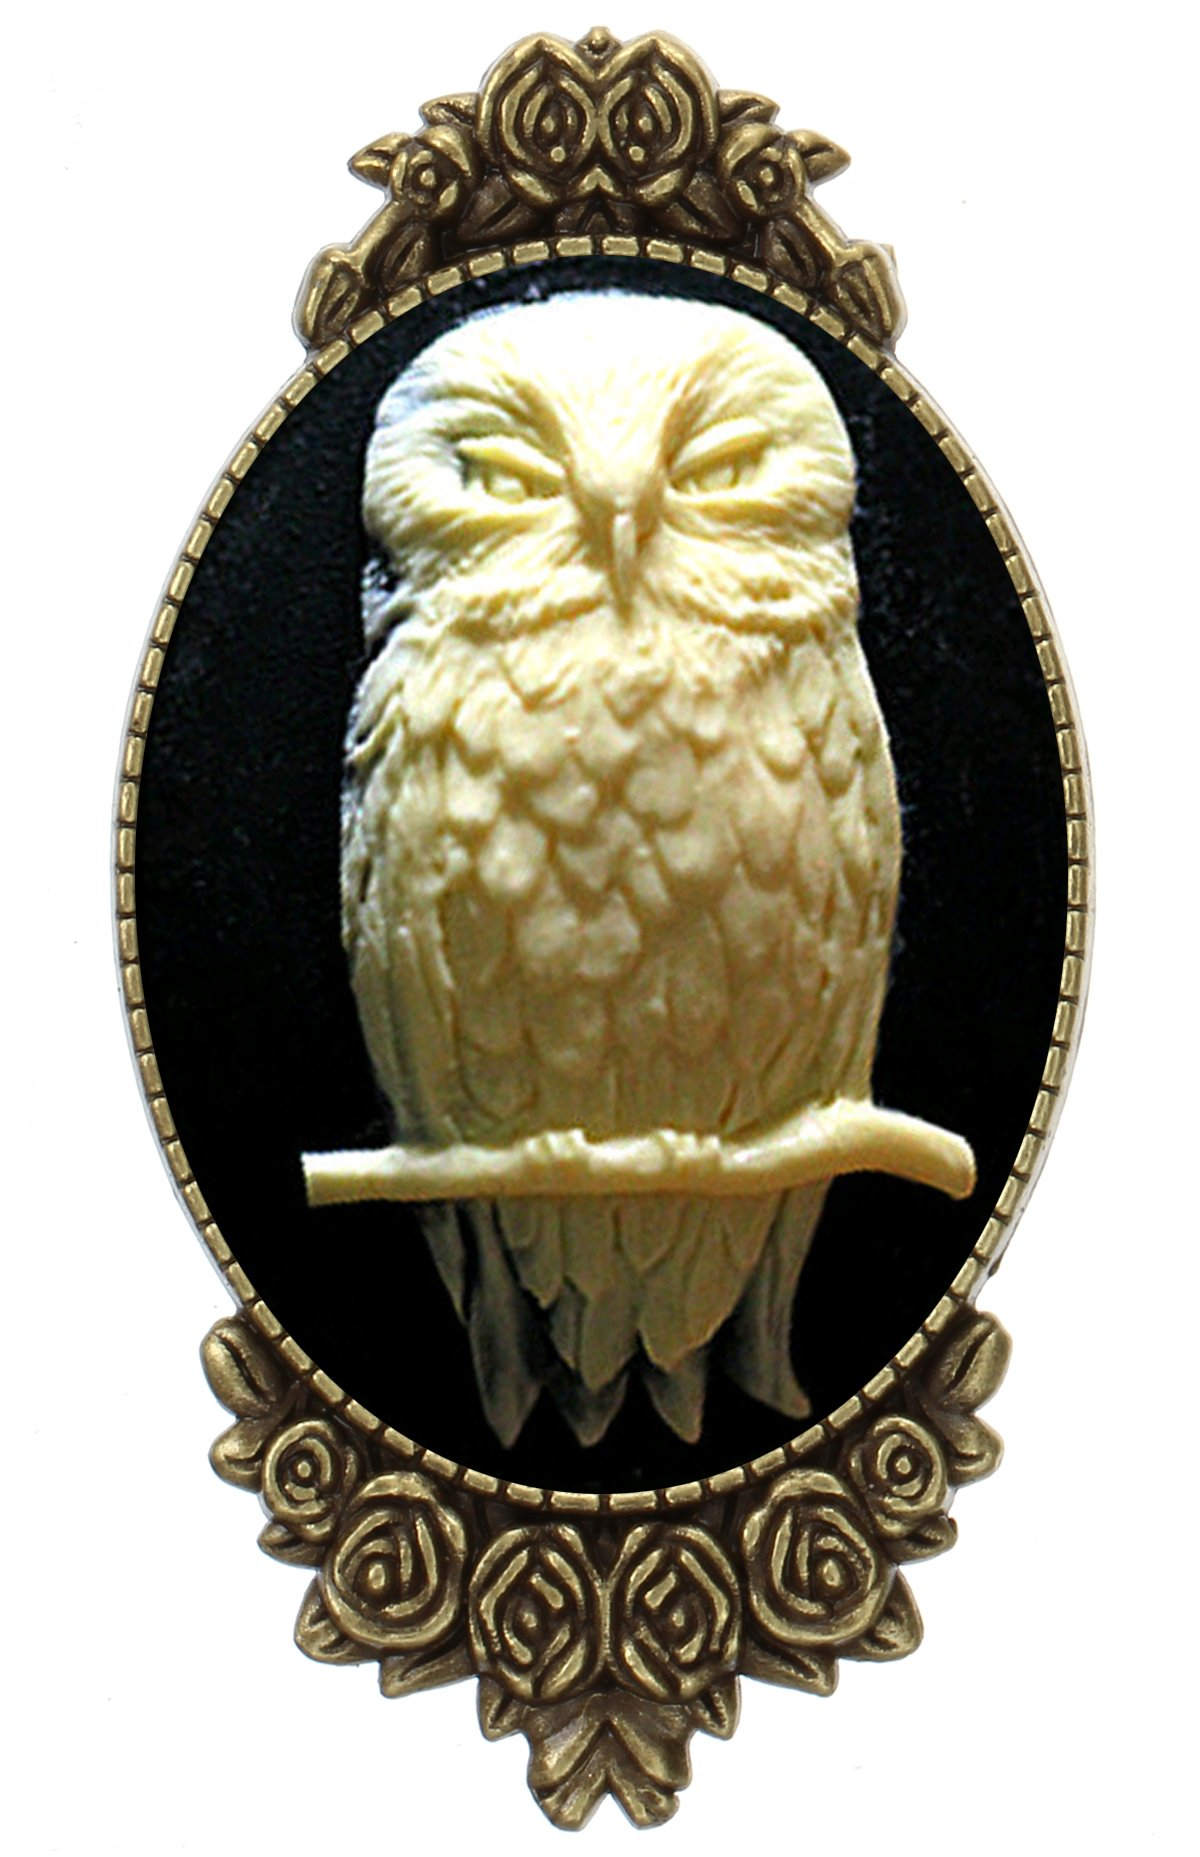 Owl Brooch Pin Rose Decor Antique Brass Animal Fashion Jewelry Pouch for Gift